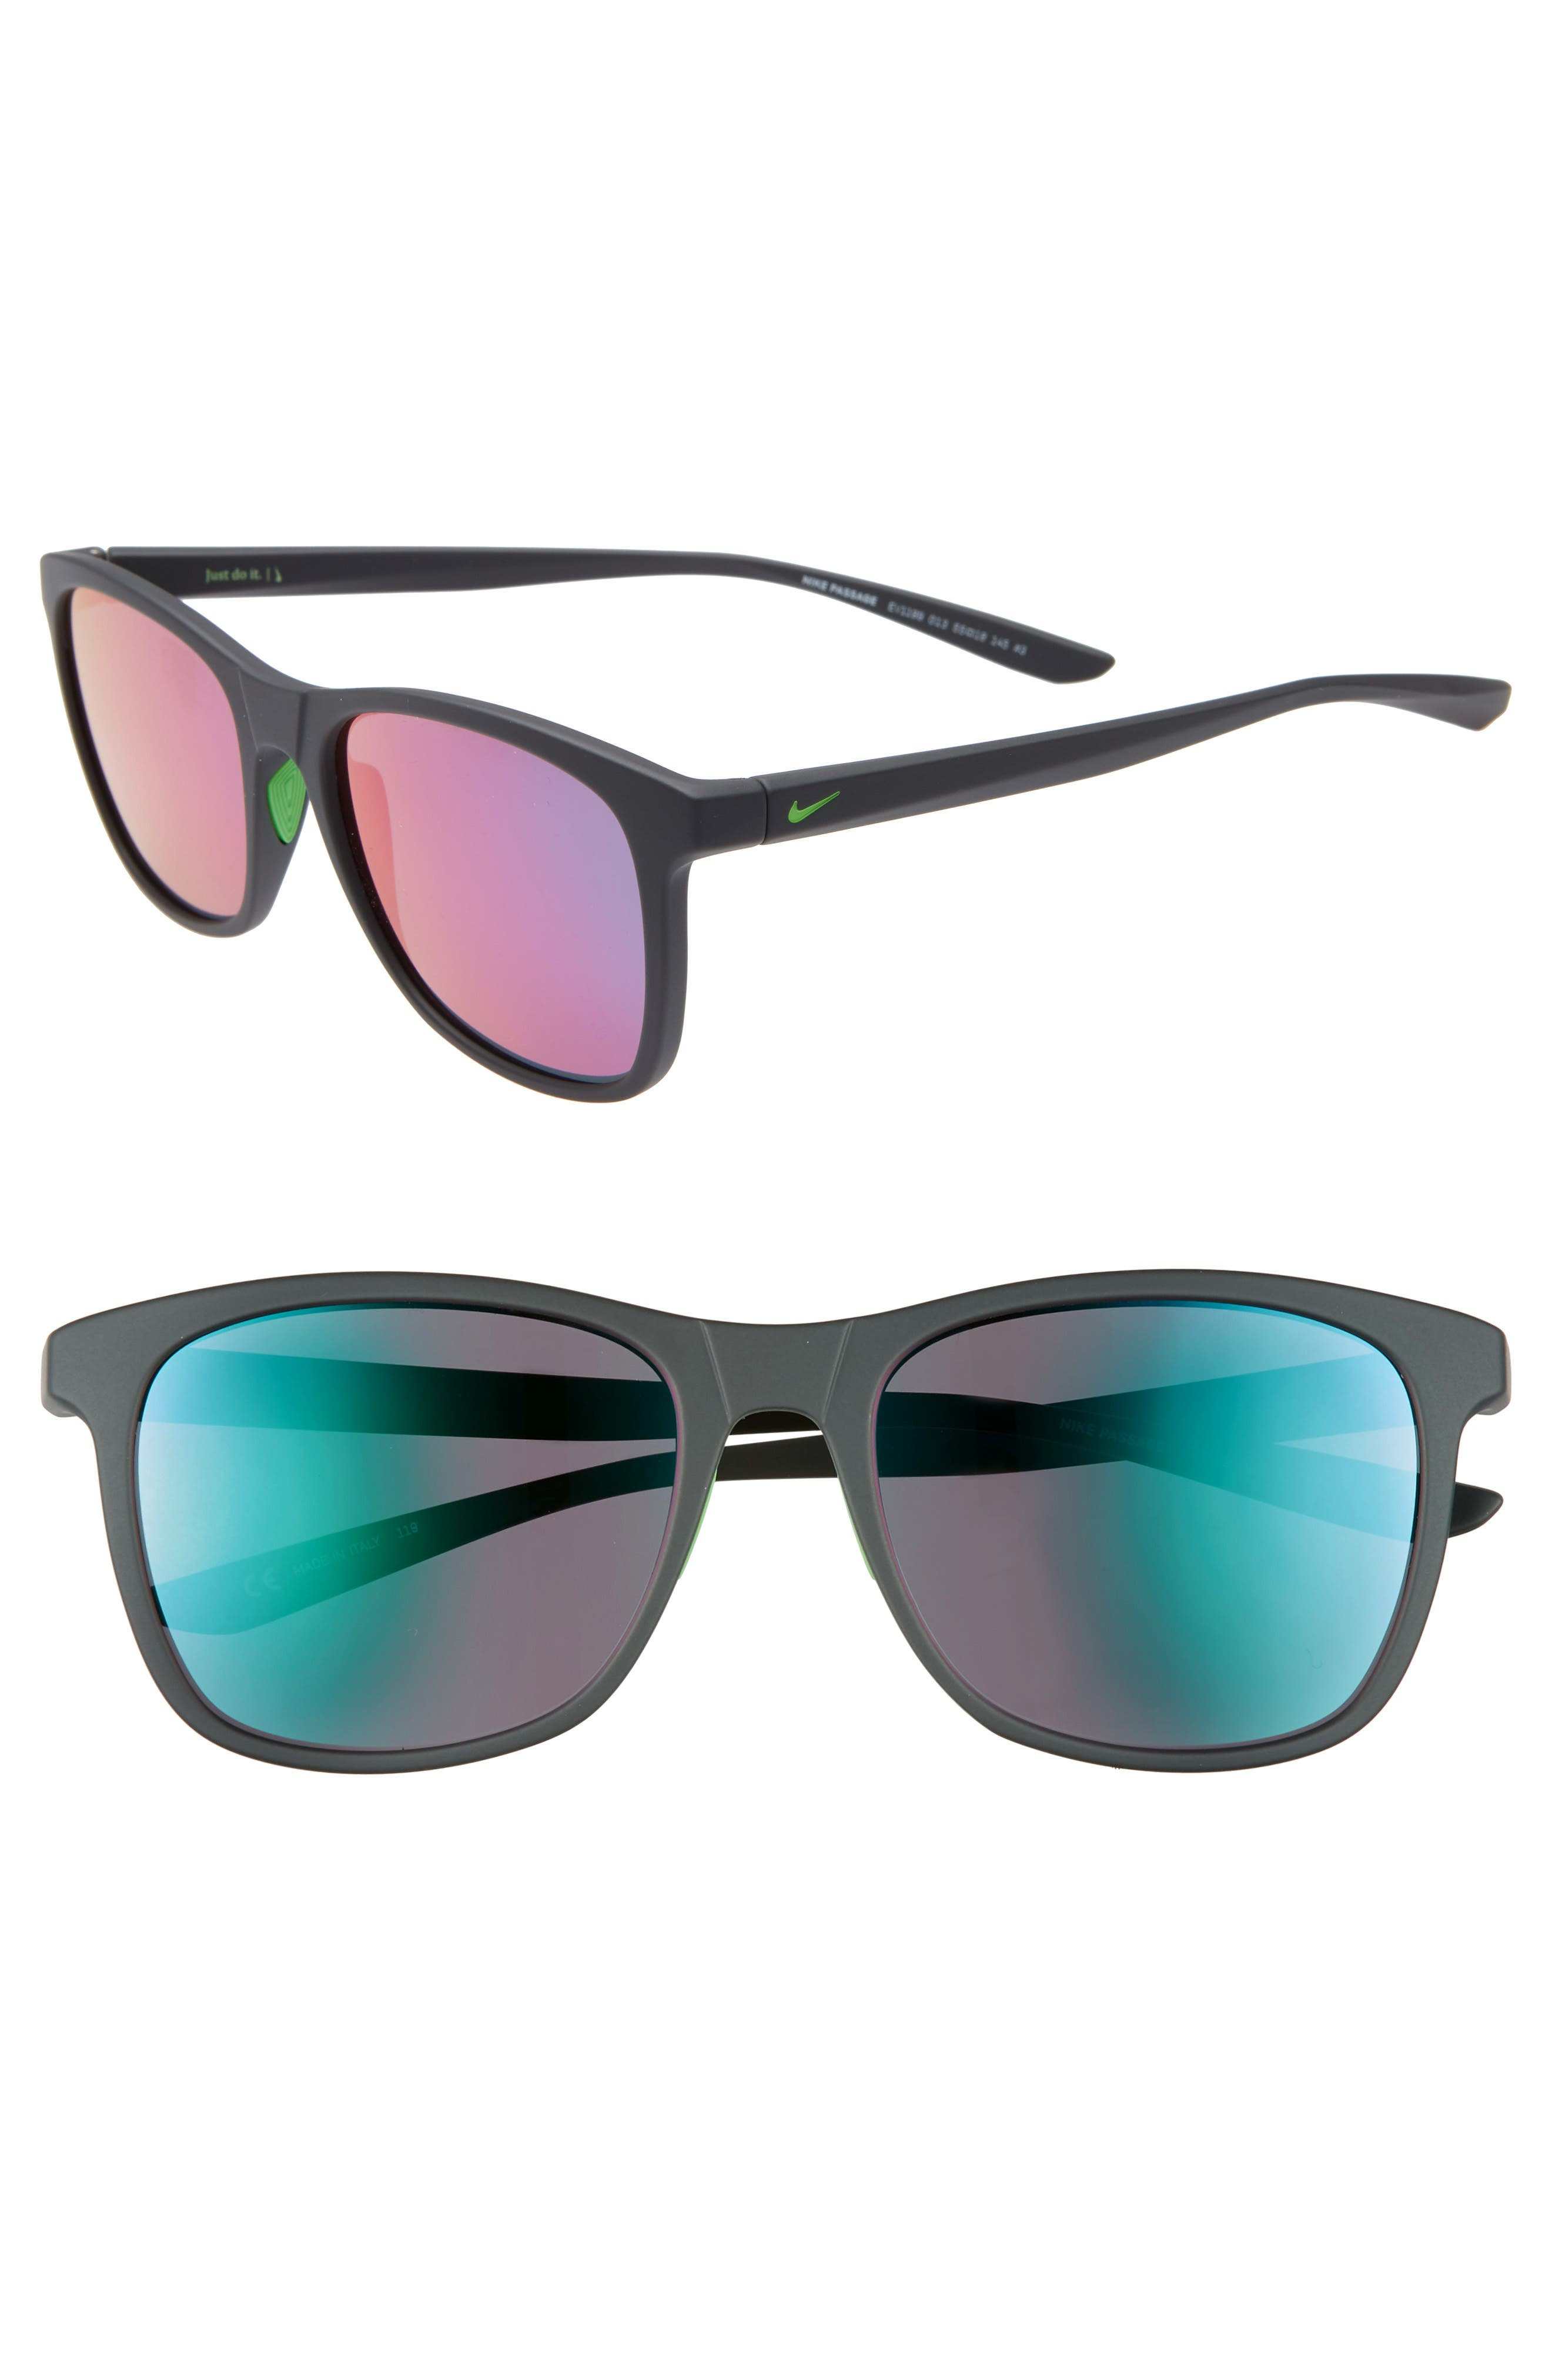 Nike Passage 55Mm Square Sunglasses - Matte Dark Grey/ Teal/ Pink